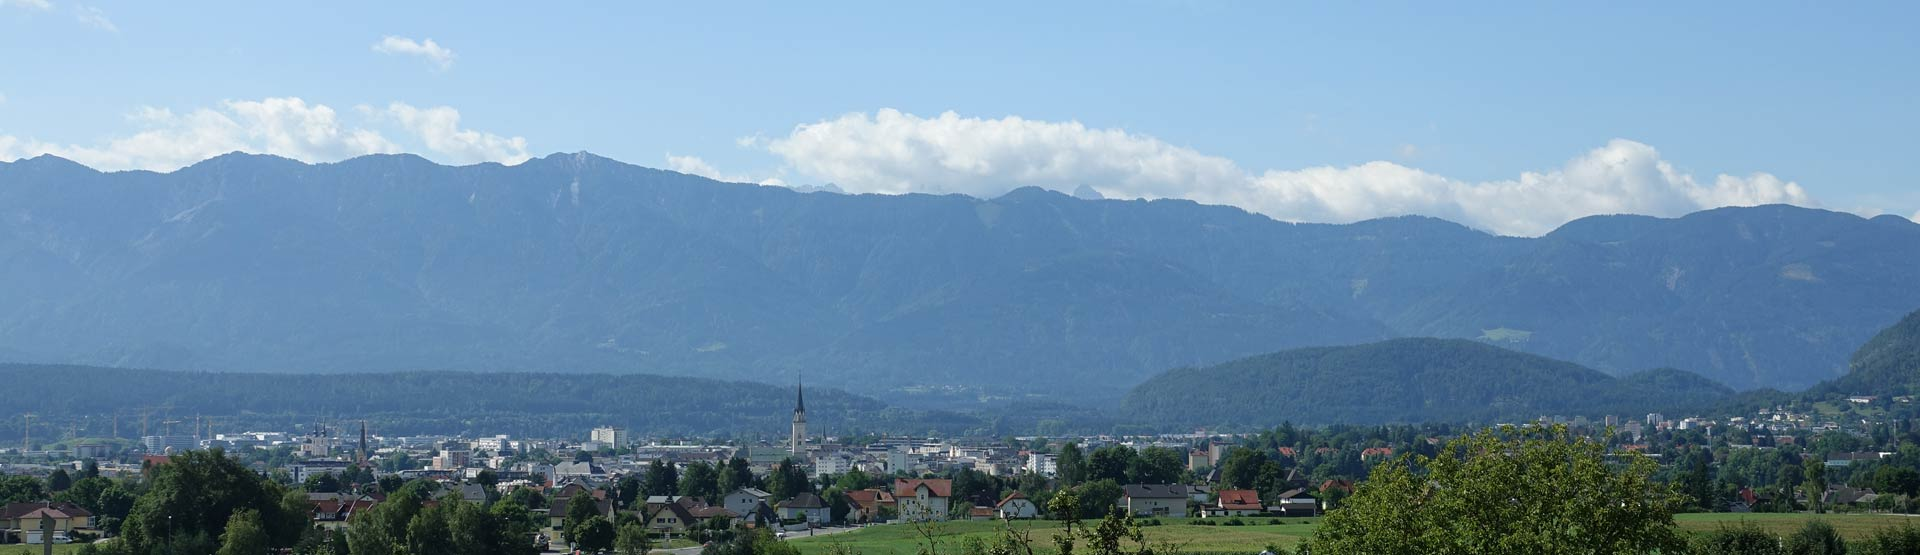 View over Villach from Gasthof Bacher